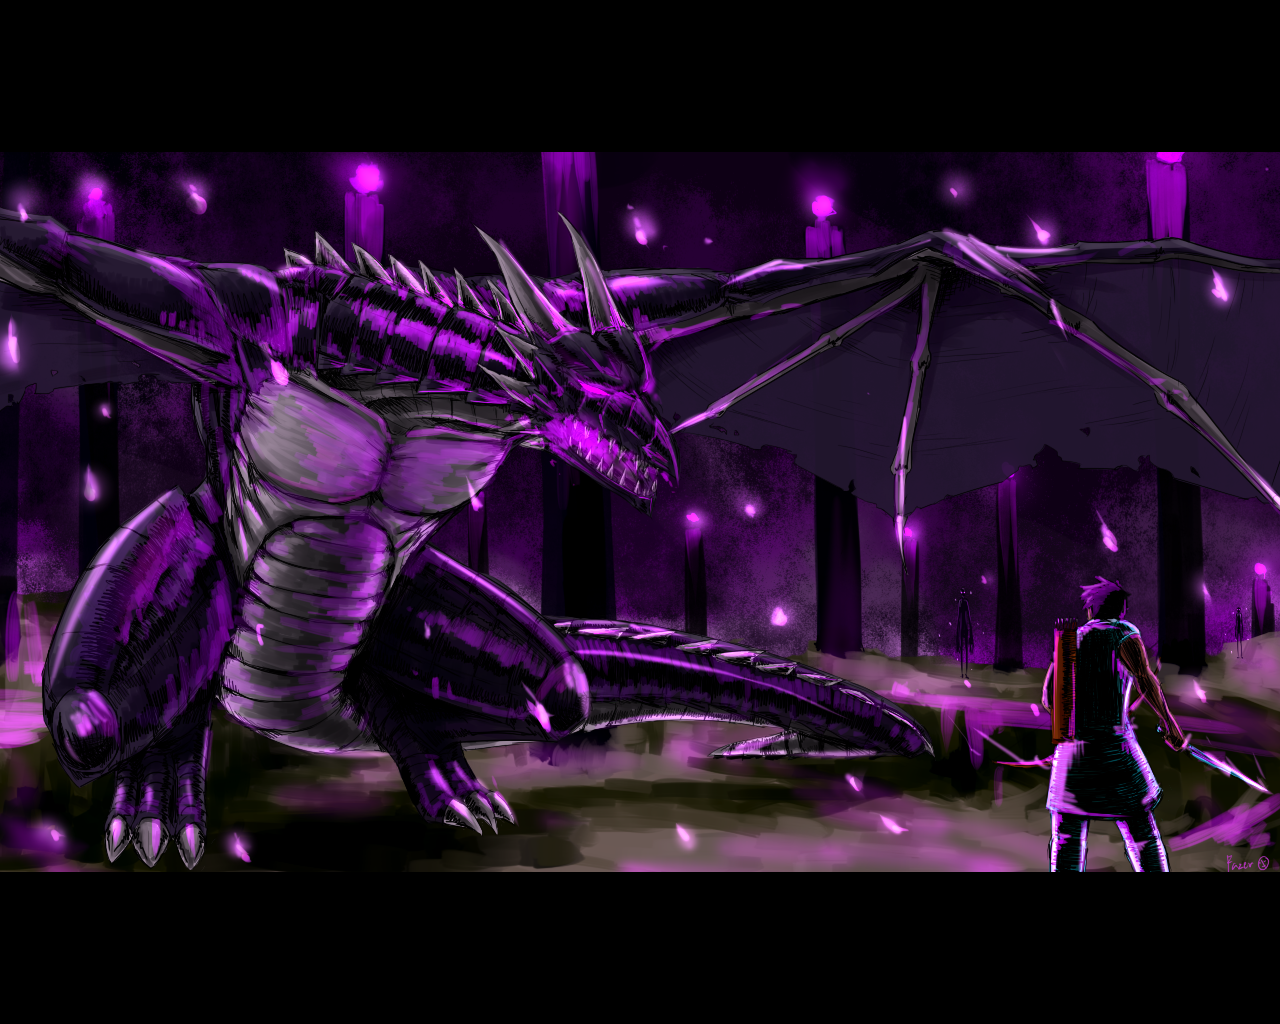 Free Download This Is Drawing About The Battle Of Enderdragon And